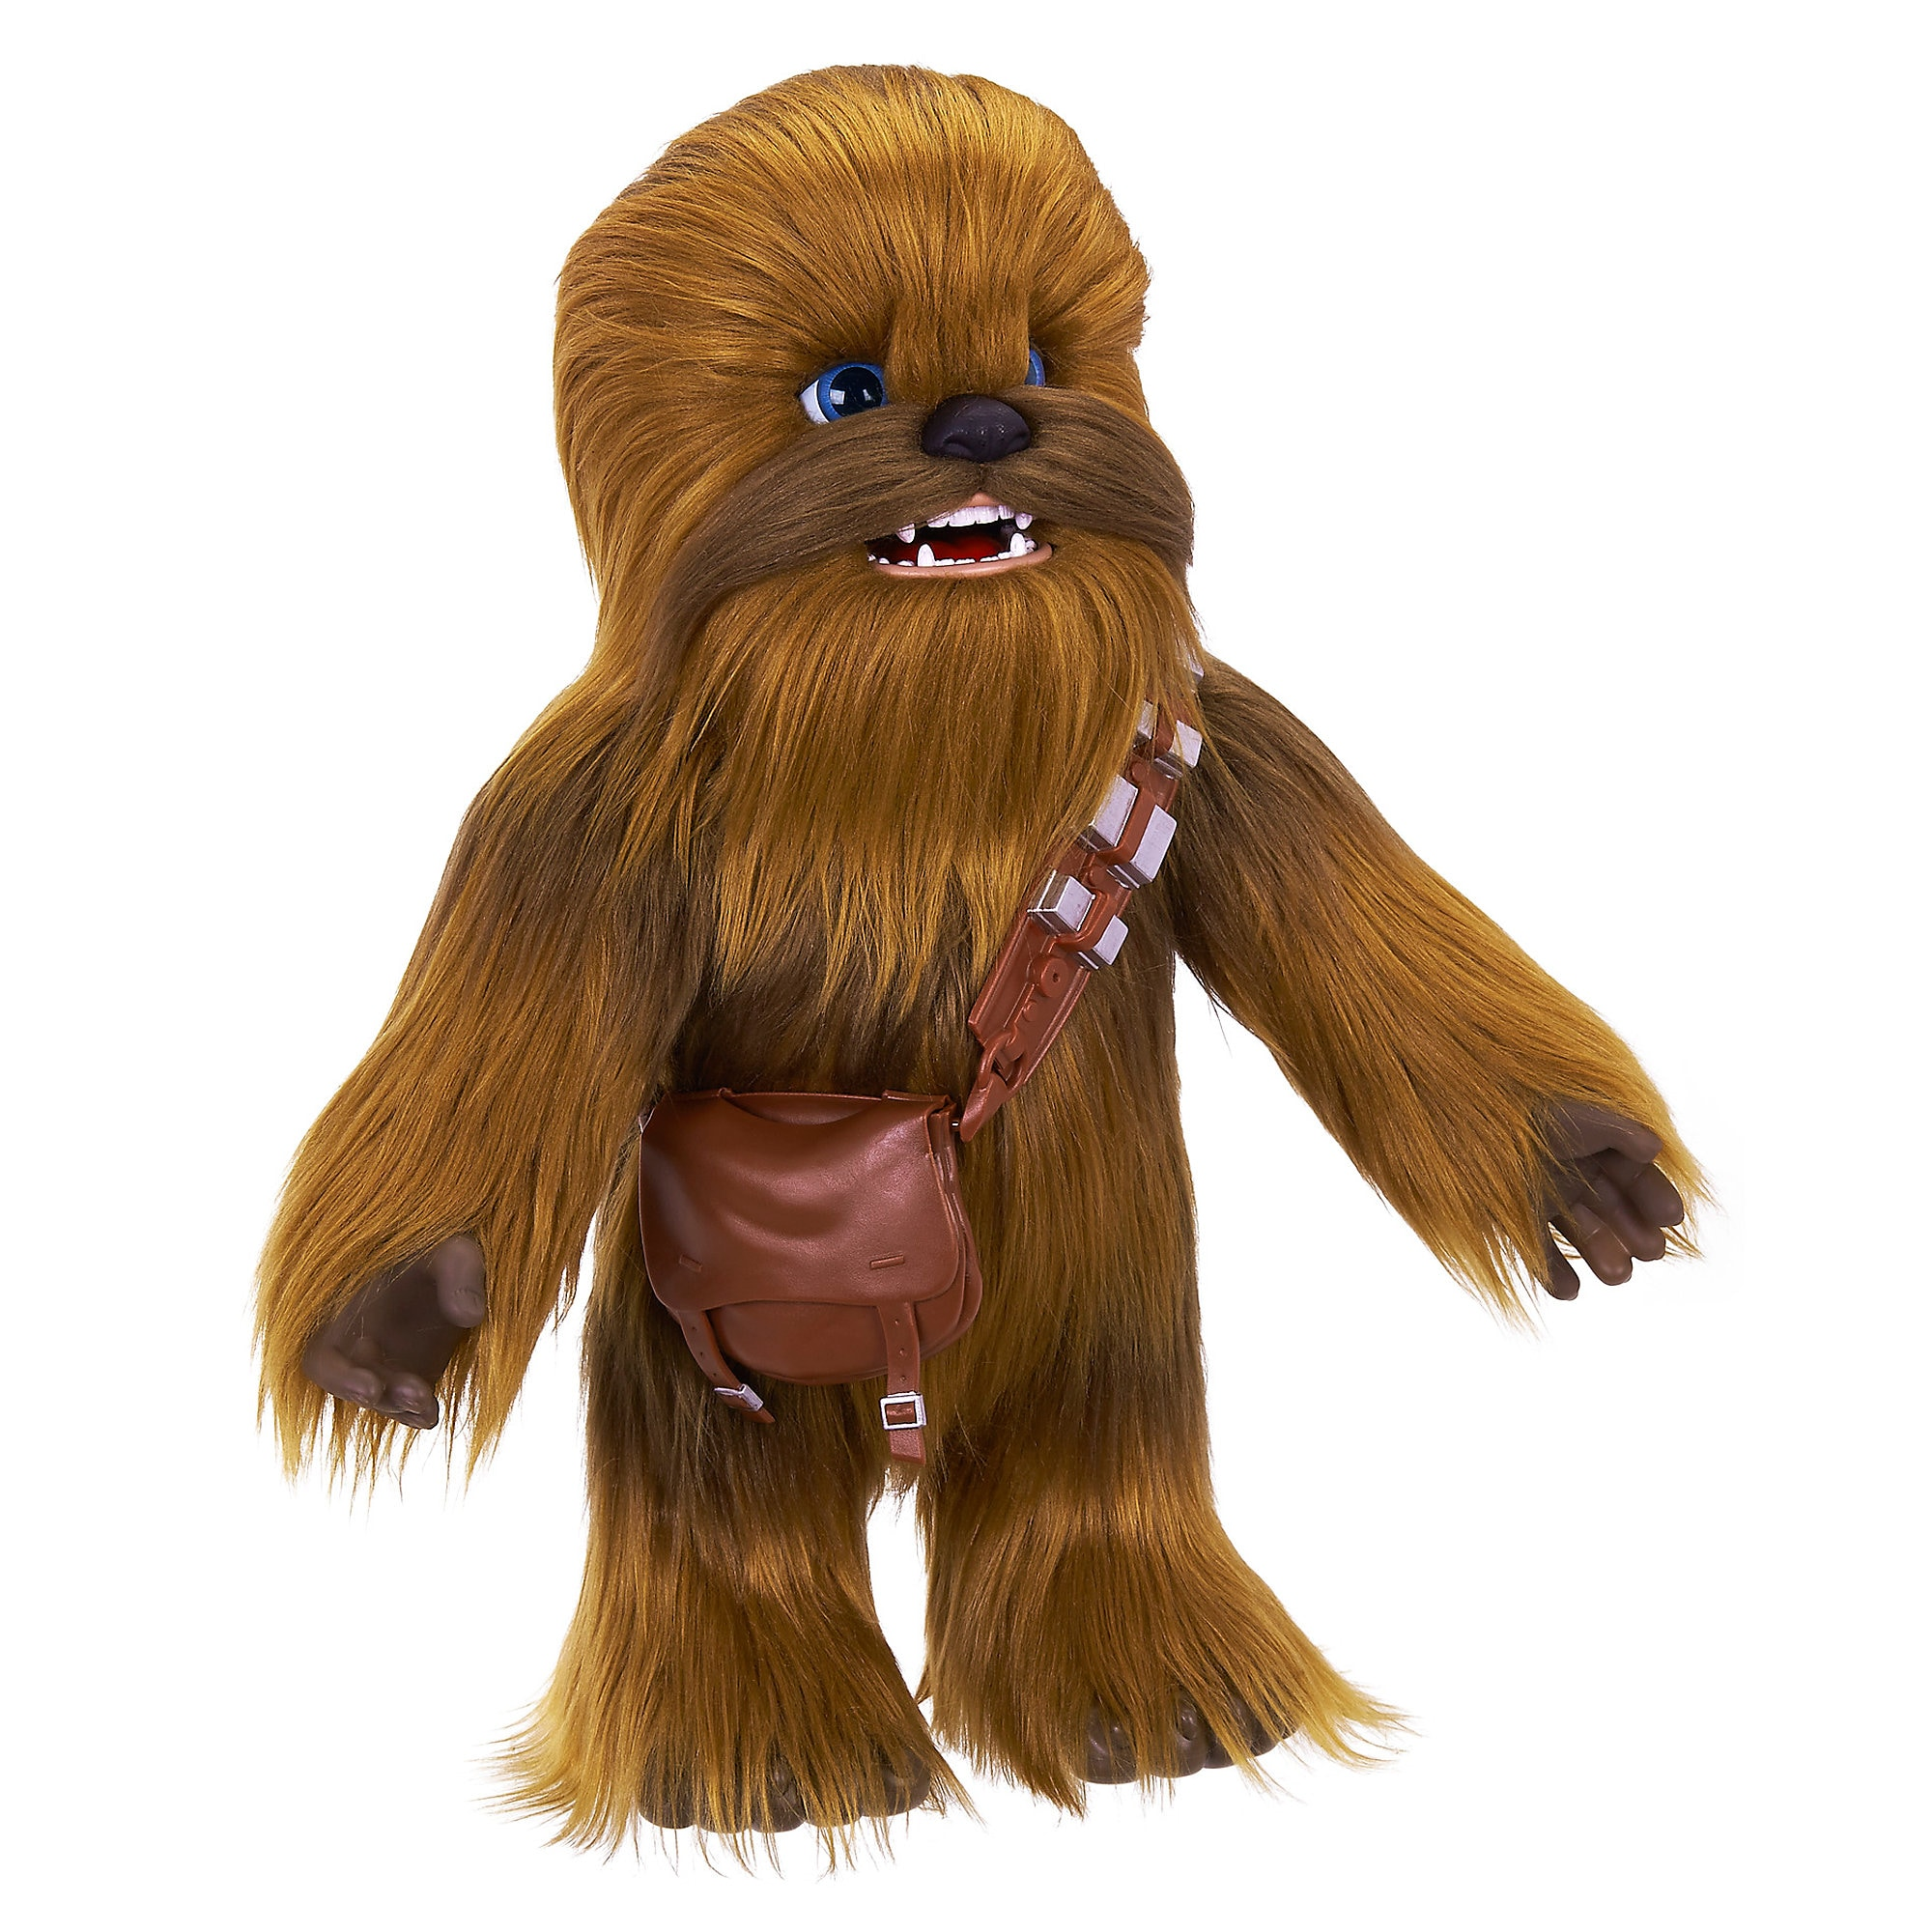 Chewbacca Interactive Toy by Hasbro - Star Wars  08c68f07806e